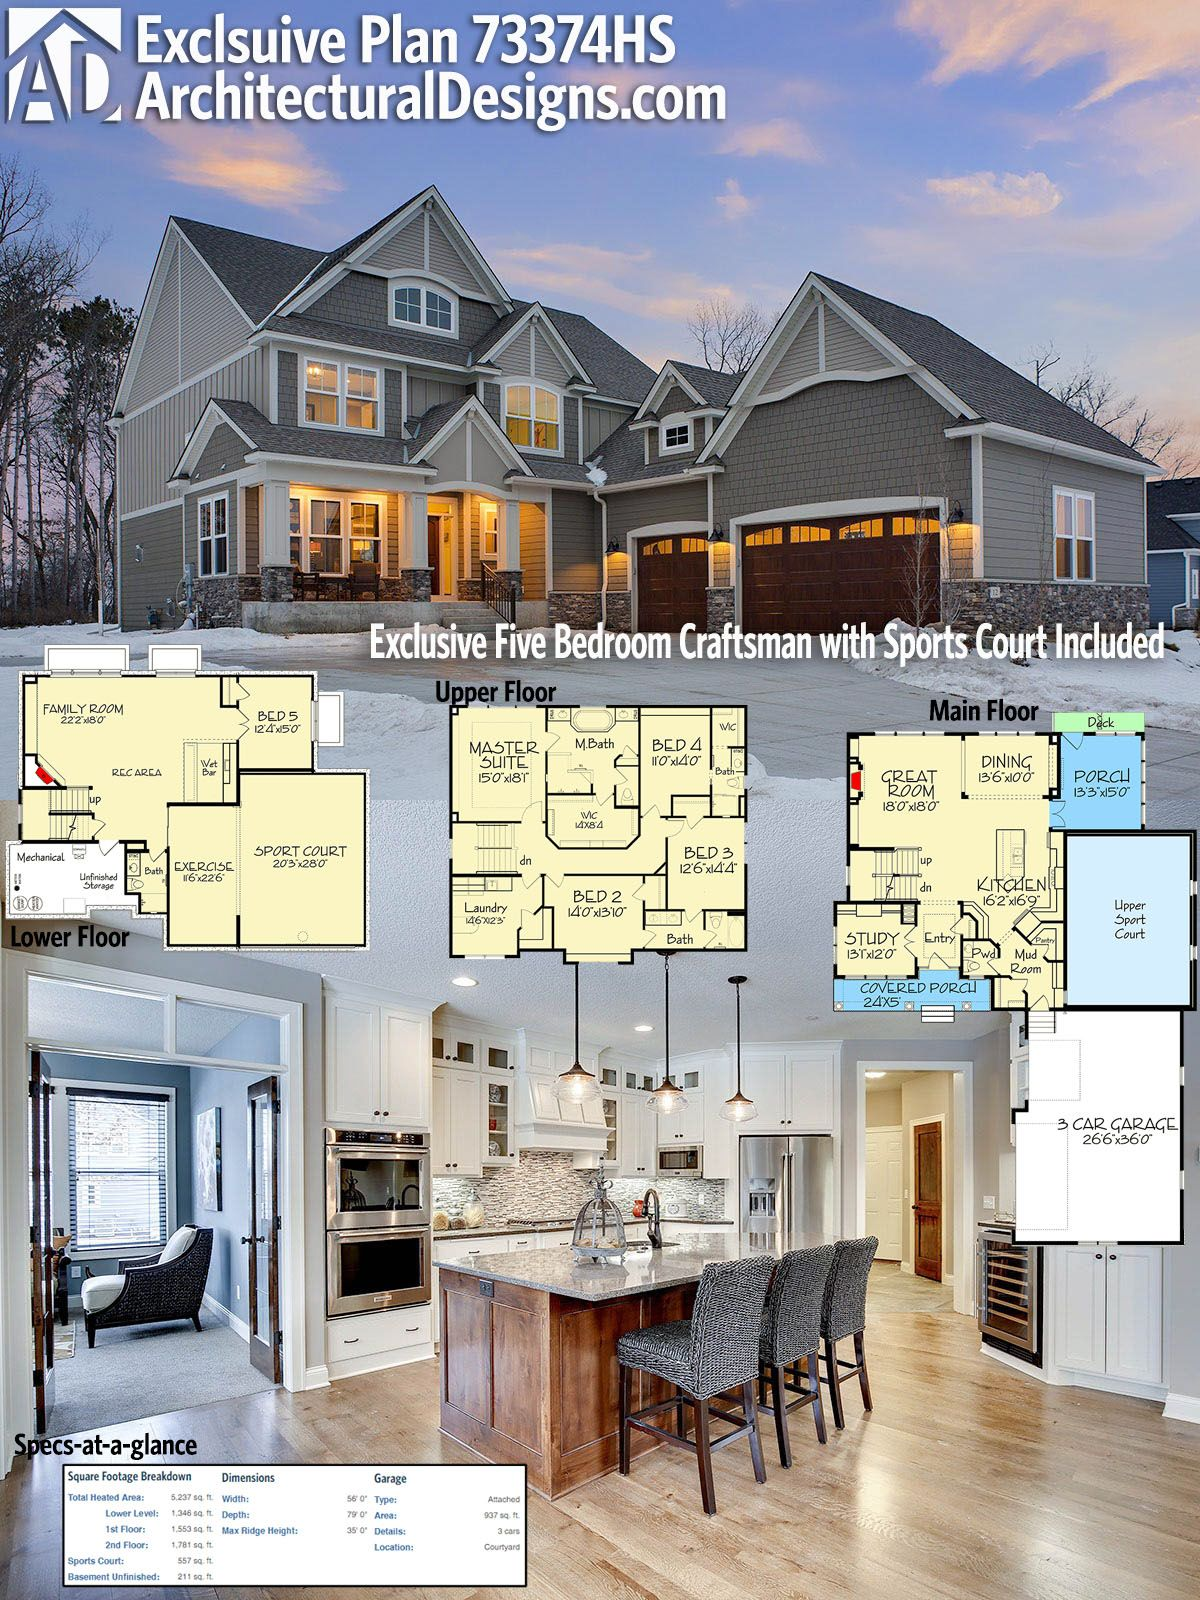 Plan 73374HS Exclusive Five Bedroom Craftsman with